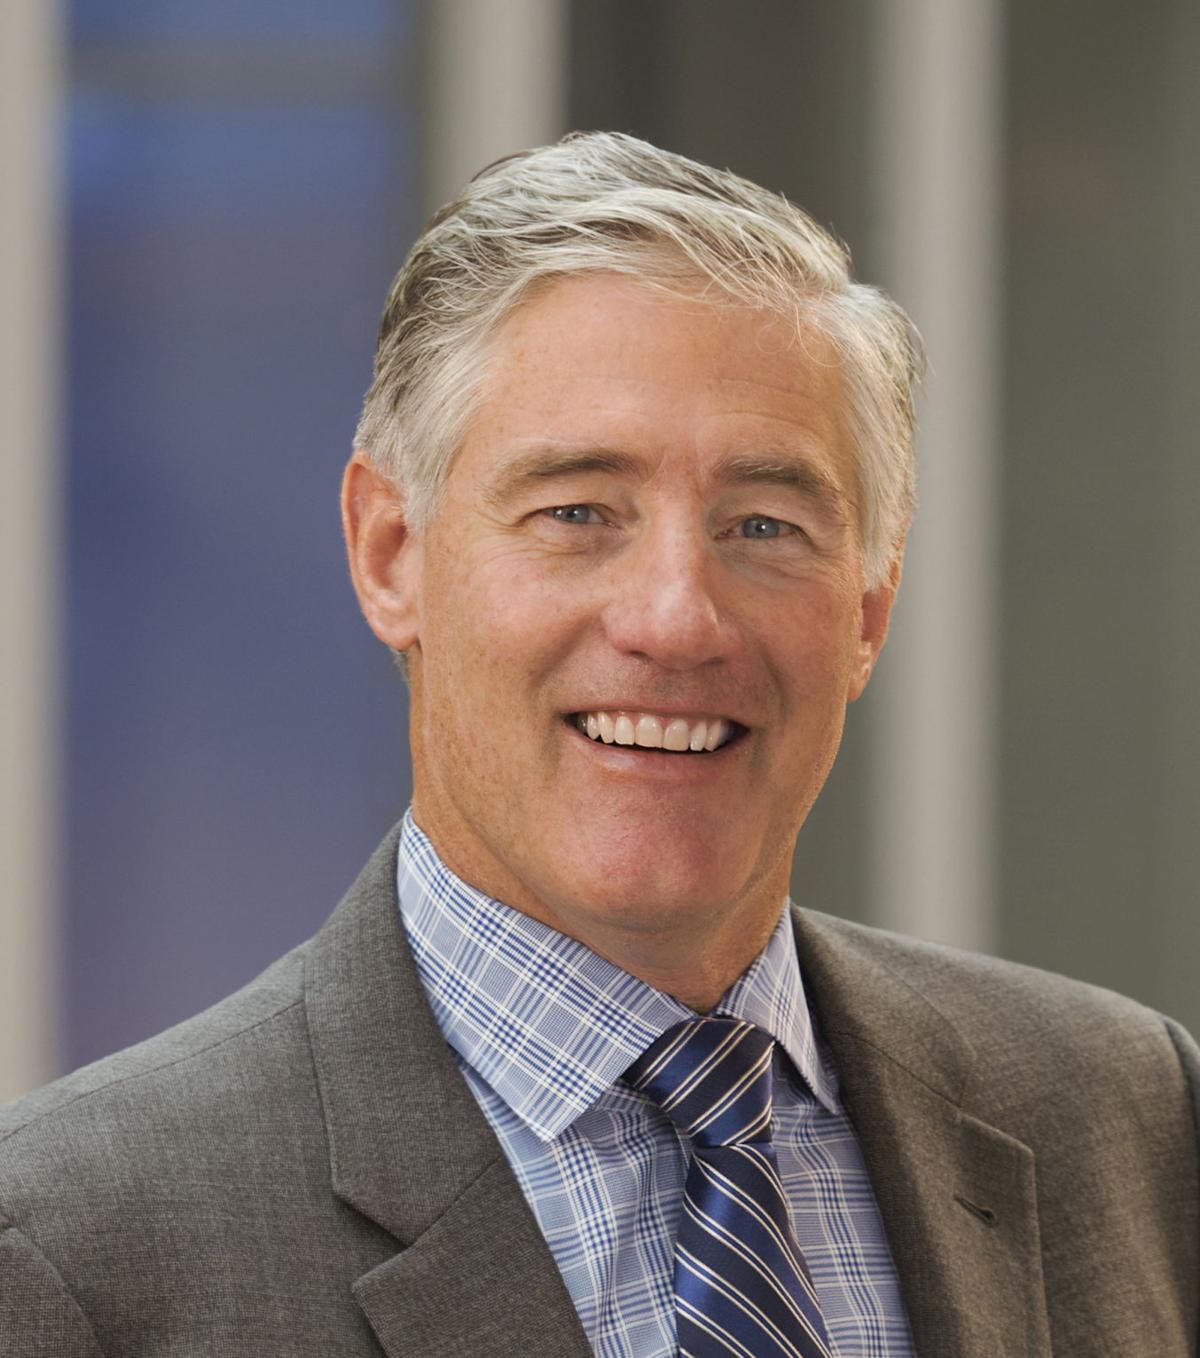 Phillips S. Baker Jr. Hecla Mining CEO